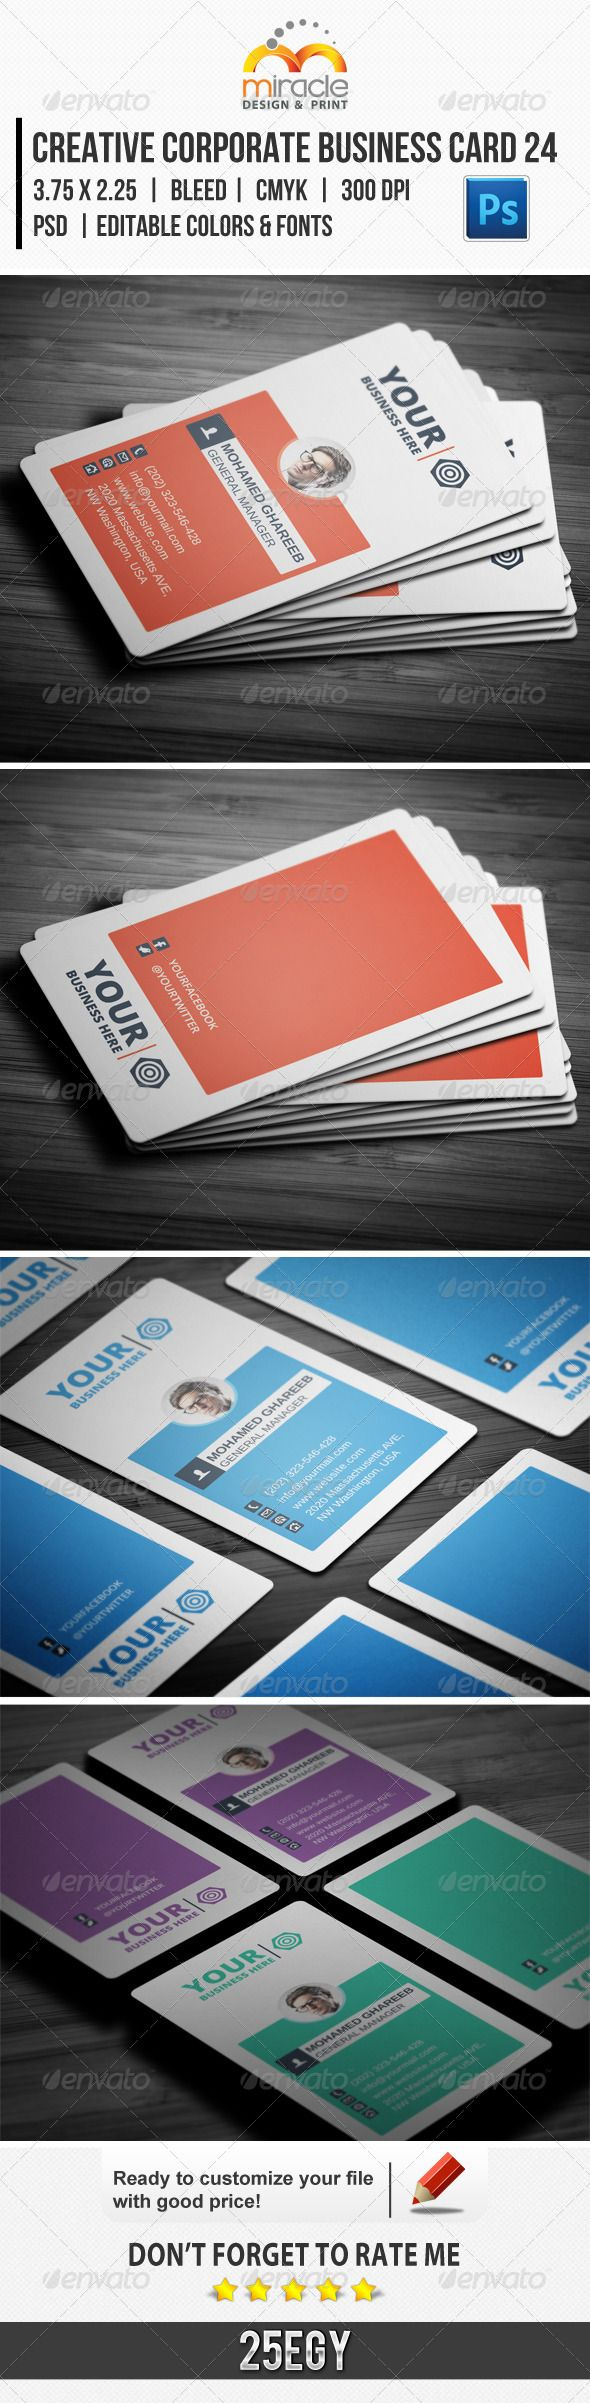 10 best Business cards images on Pinterest | Lipsense business cards ...